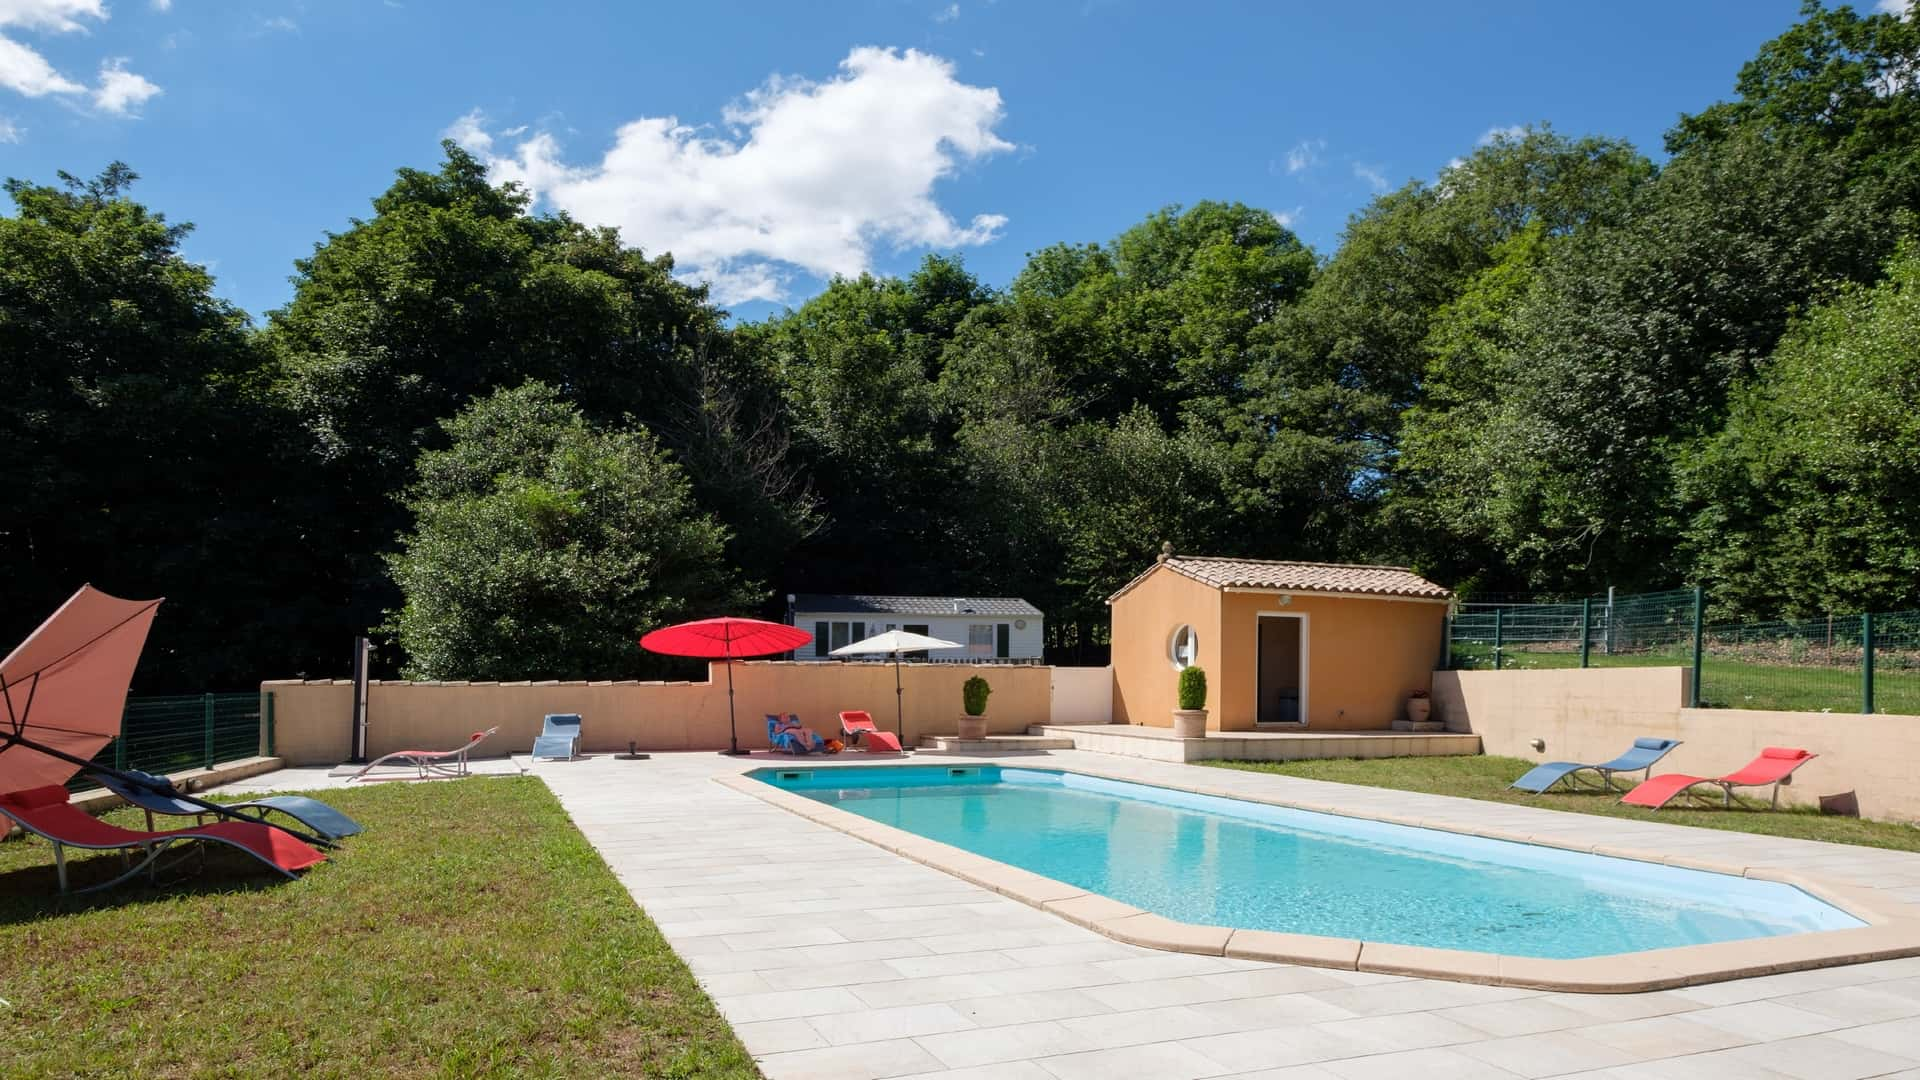 swimming pool domaine de malouziès - character gites with swimming pool and charming bed and brekfasts near Carcassonne